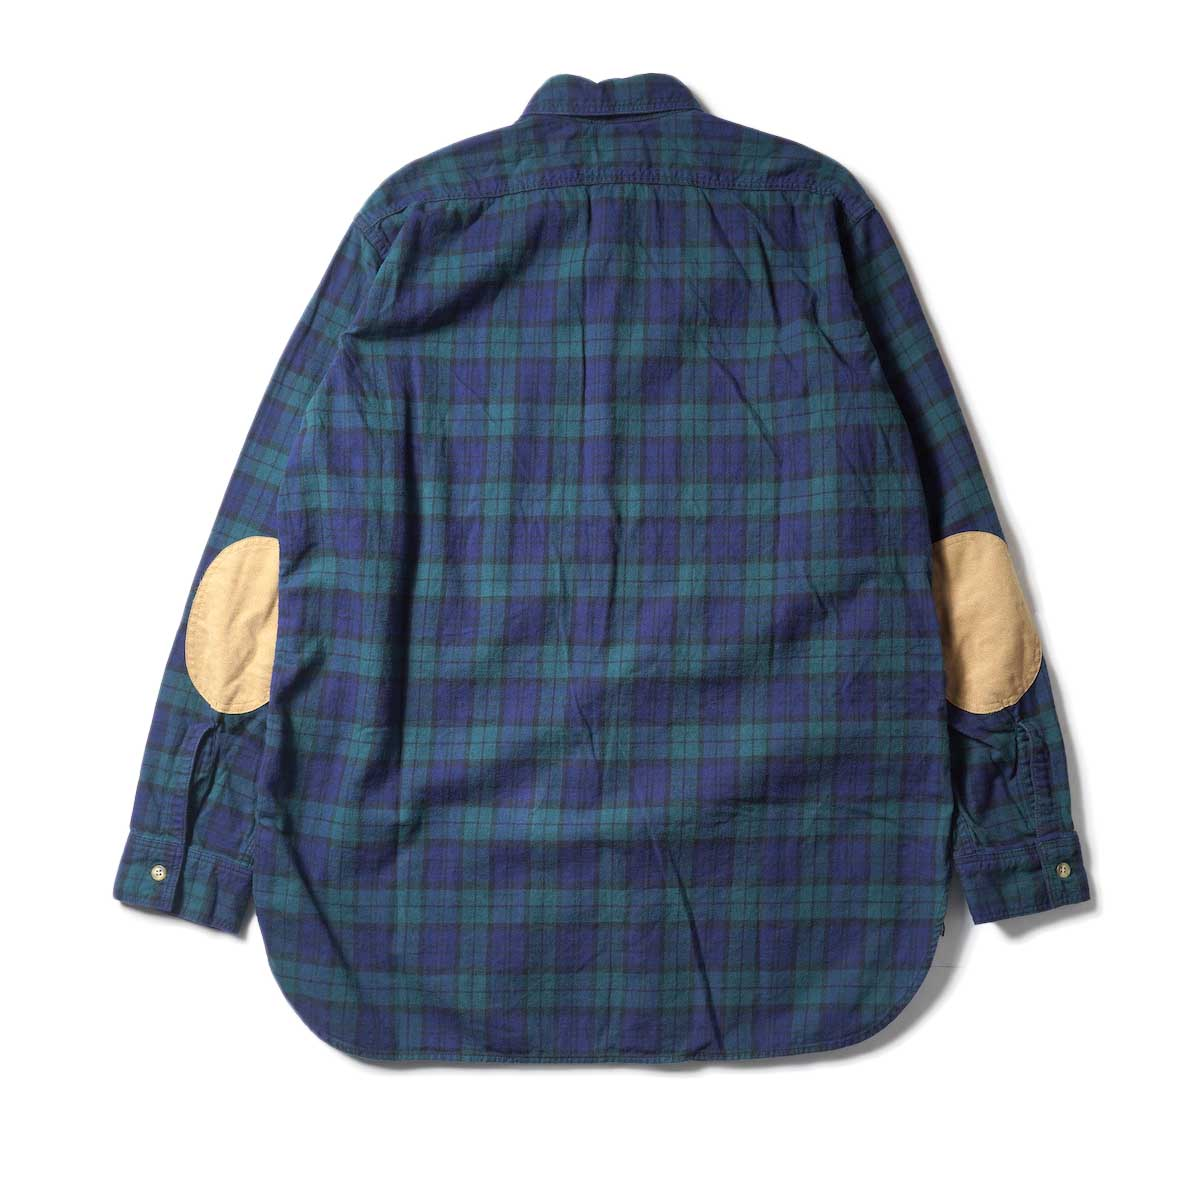 orSlow / VINTAGE FIT WORK SHIRT (Green Check)背面